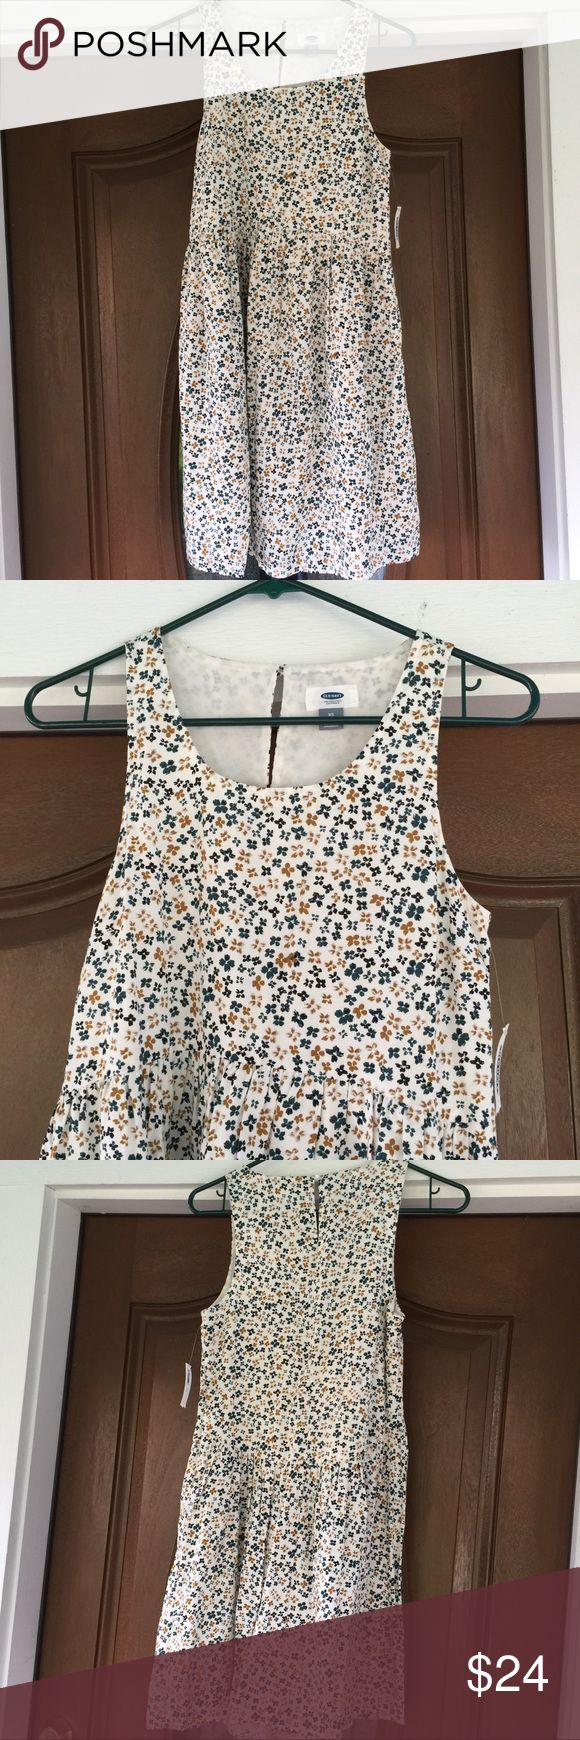 """NWT🚨OLD NAVY Floral Dress NWT🚨OLD NAVY Floral Dress.   Babydoll style.  Wear with leggings.  Sleeveless.  Keyhole in back neckline.   Fully lined.  Cream, blue & brown Floral patterned rayon material.   Pit-to-pit 16-1/2"""".  Waist 32"""".   Length 33"""" (shoulder to hem).  NWT Old Navy Dresses Mini"""